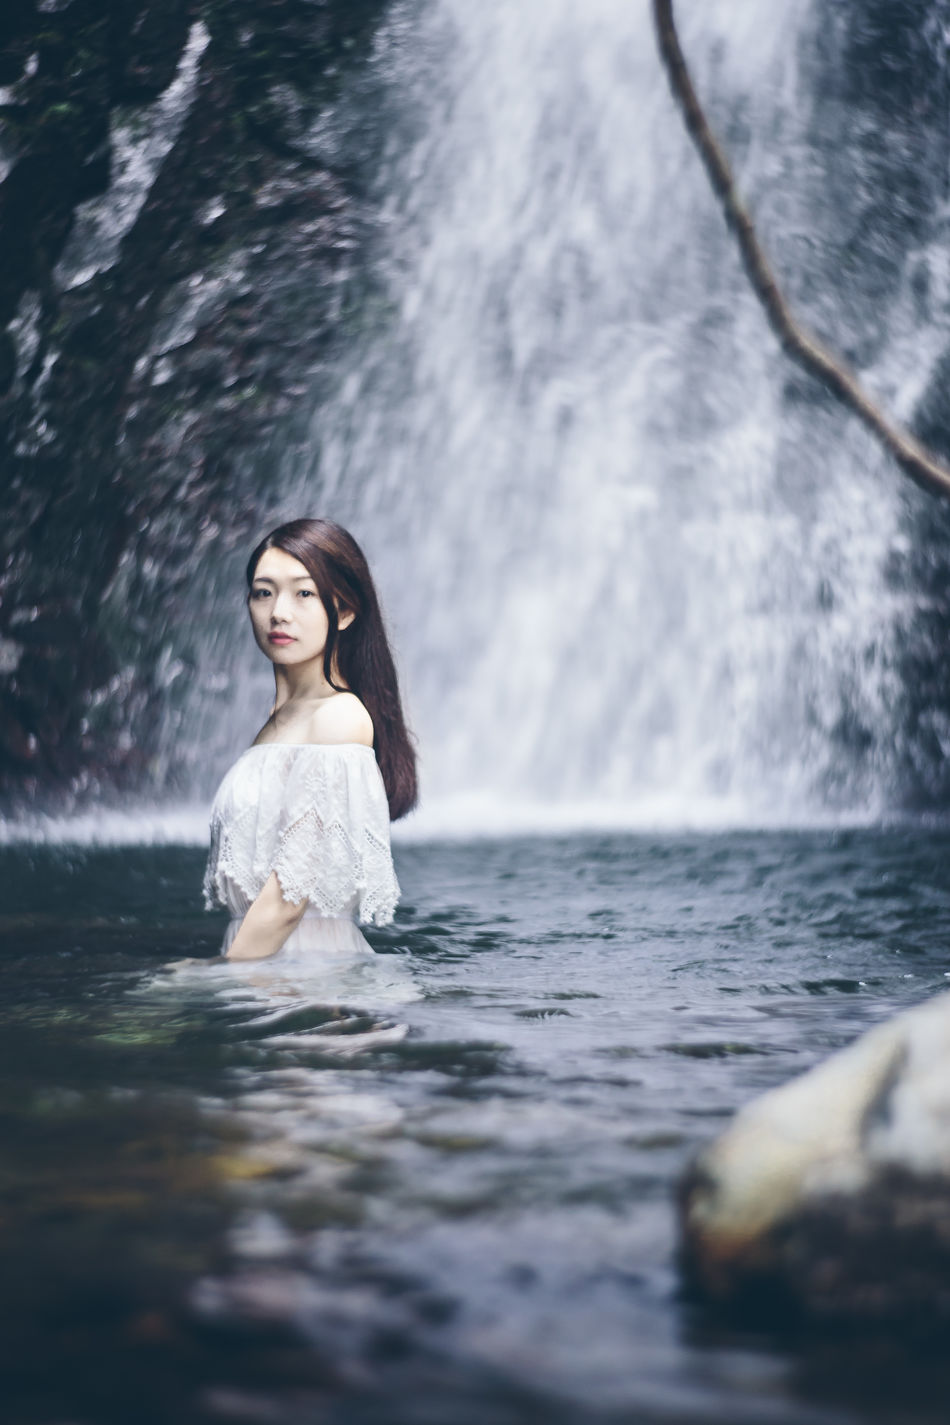 Casual Clothing Day Enjoyment Flowing Water Focus On Foreground Fun Leisure Activity Lifestyles Motion Nature Outdoors Portrait Rippled Vacations Water